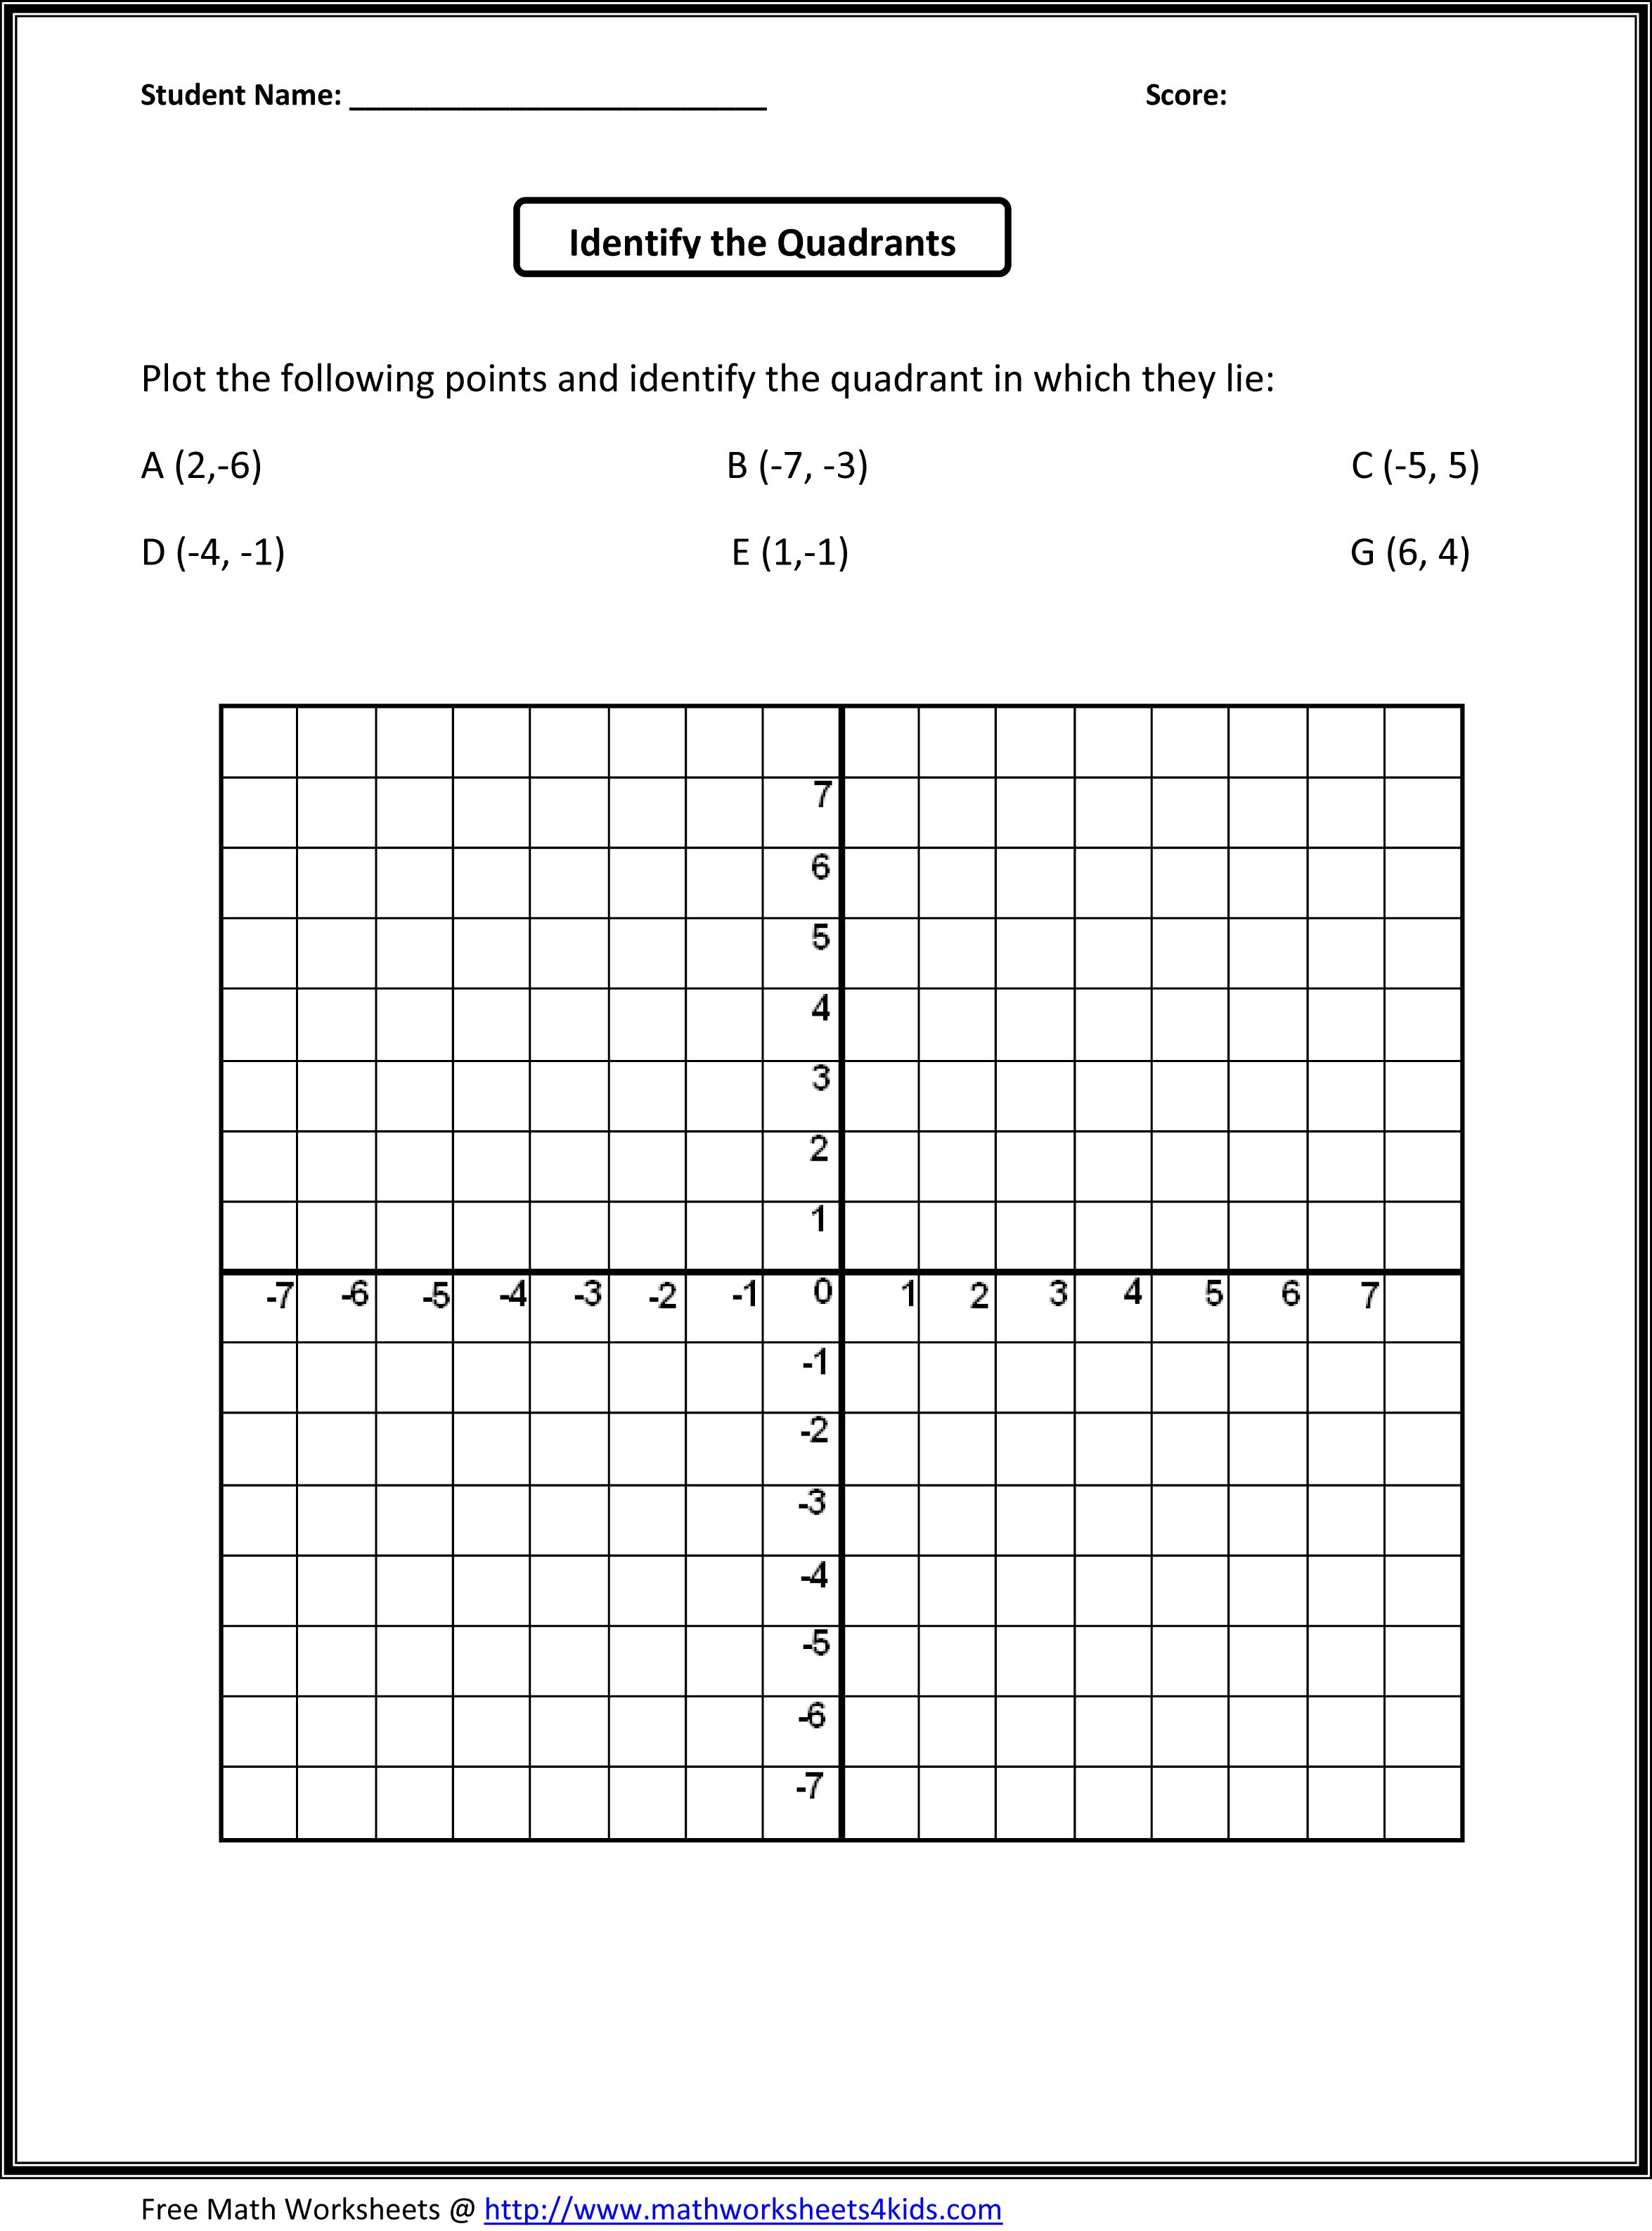 Printables 6th Grade Math Worksheets Online 1000 images about madi math on pinterest notebooks 5th grade and activities